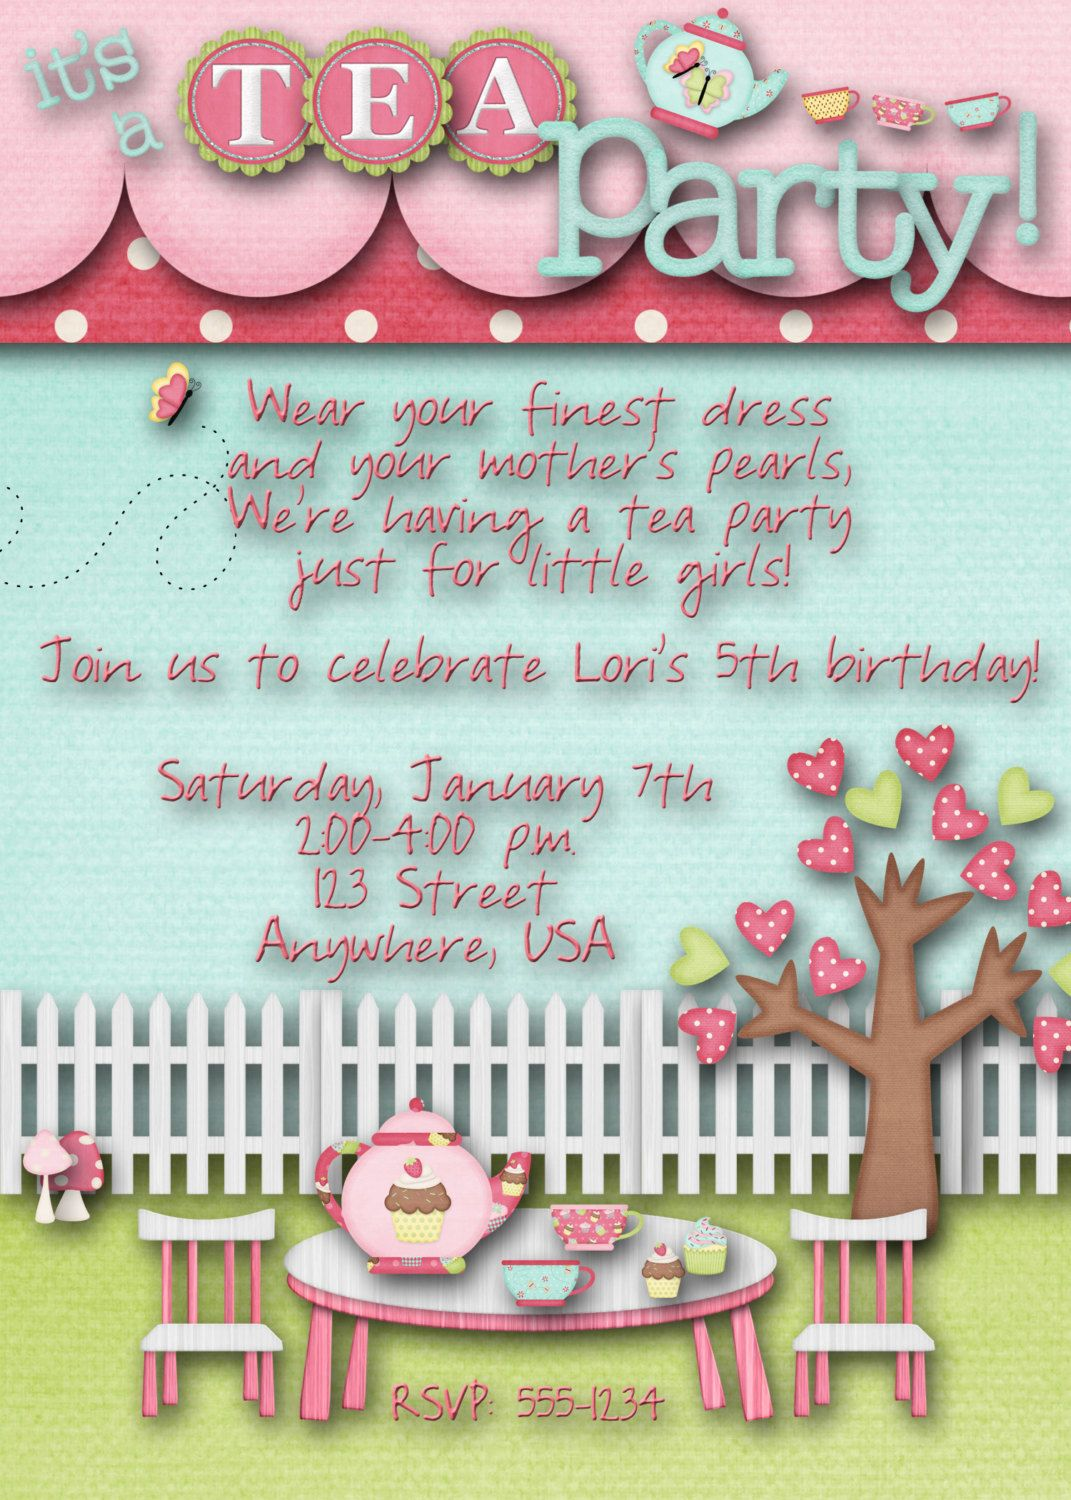 Tea Party Birthday Invitation Tea Party Birthday Invite ...